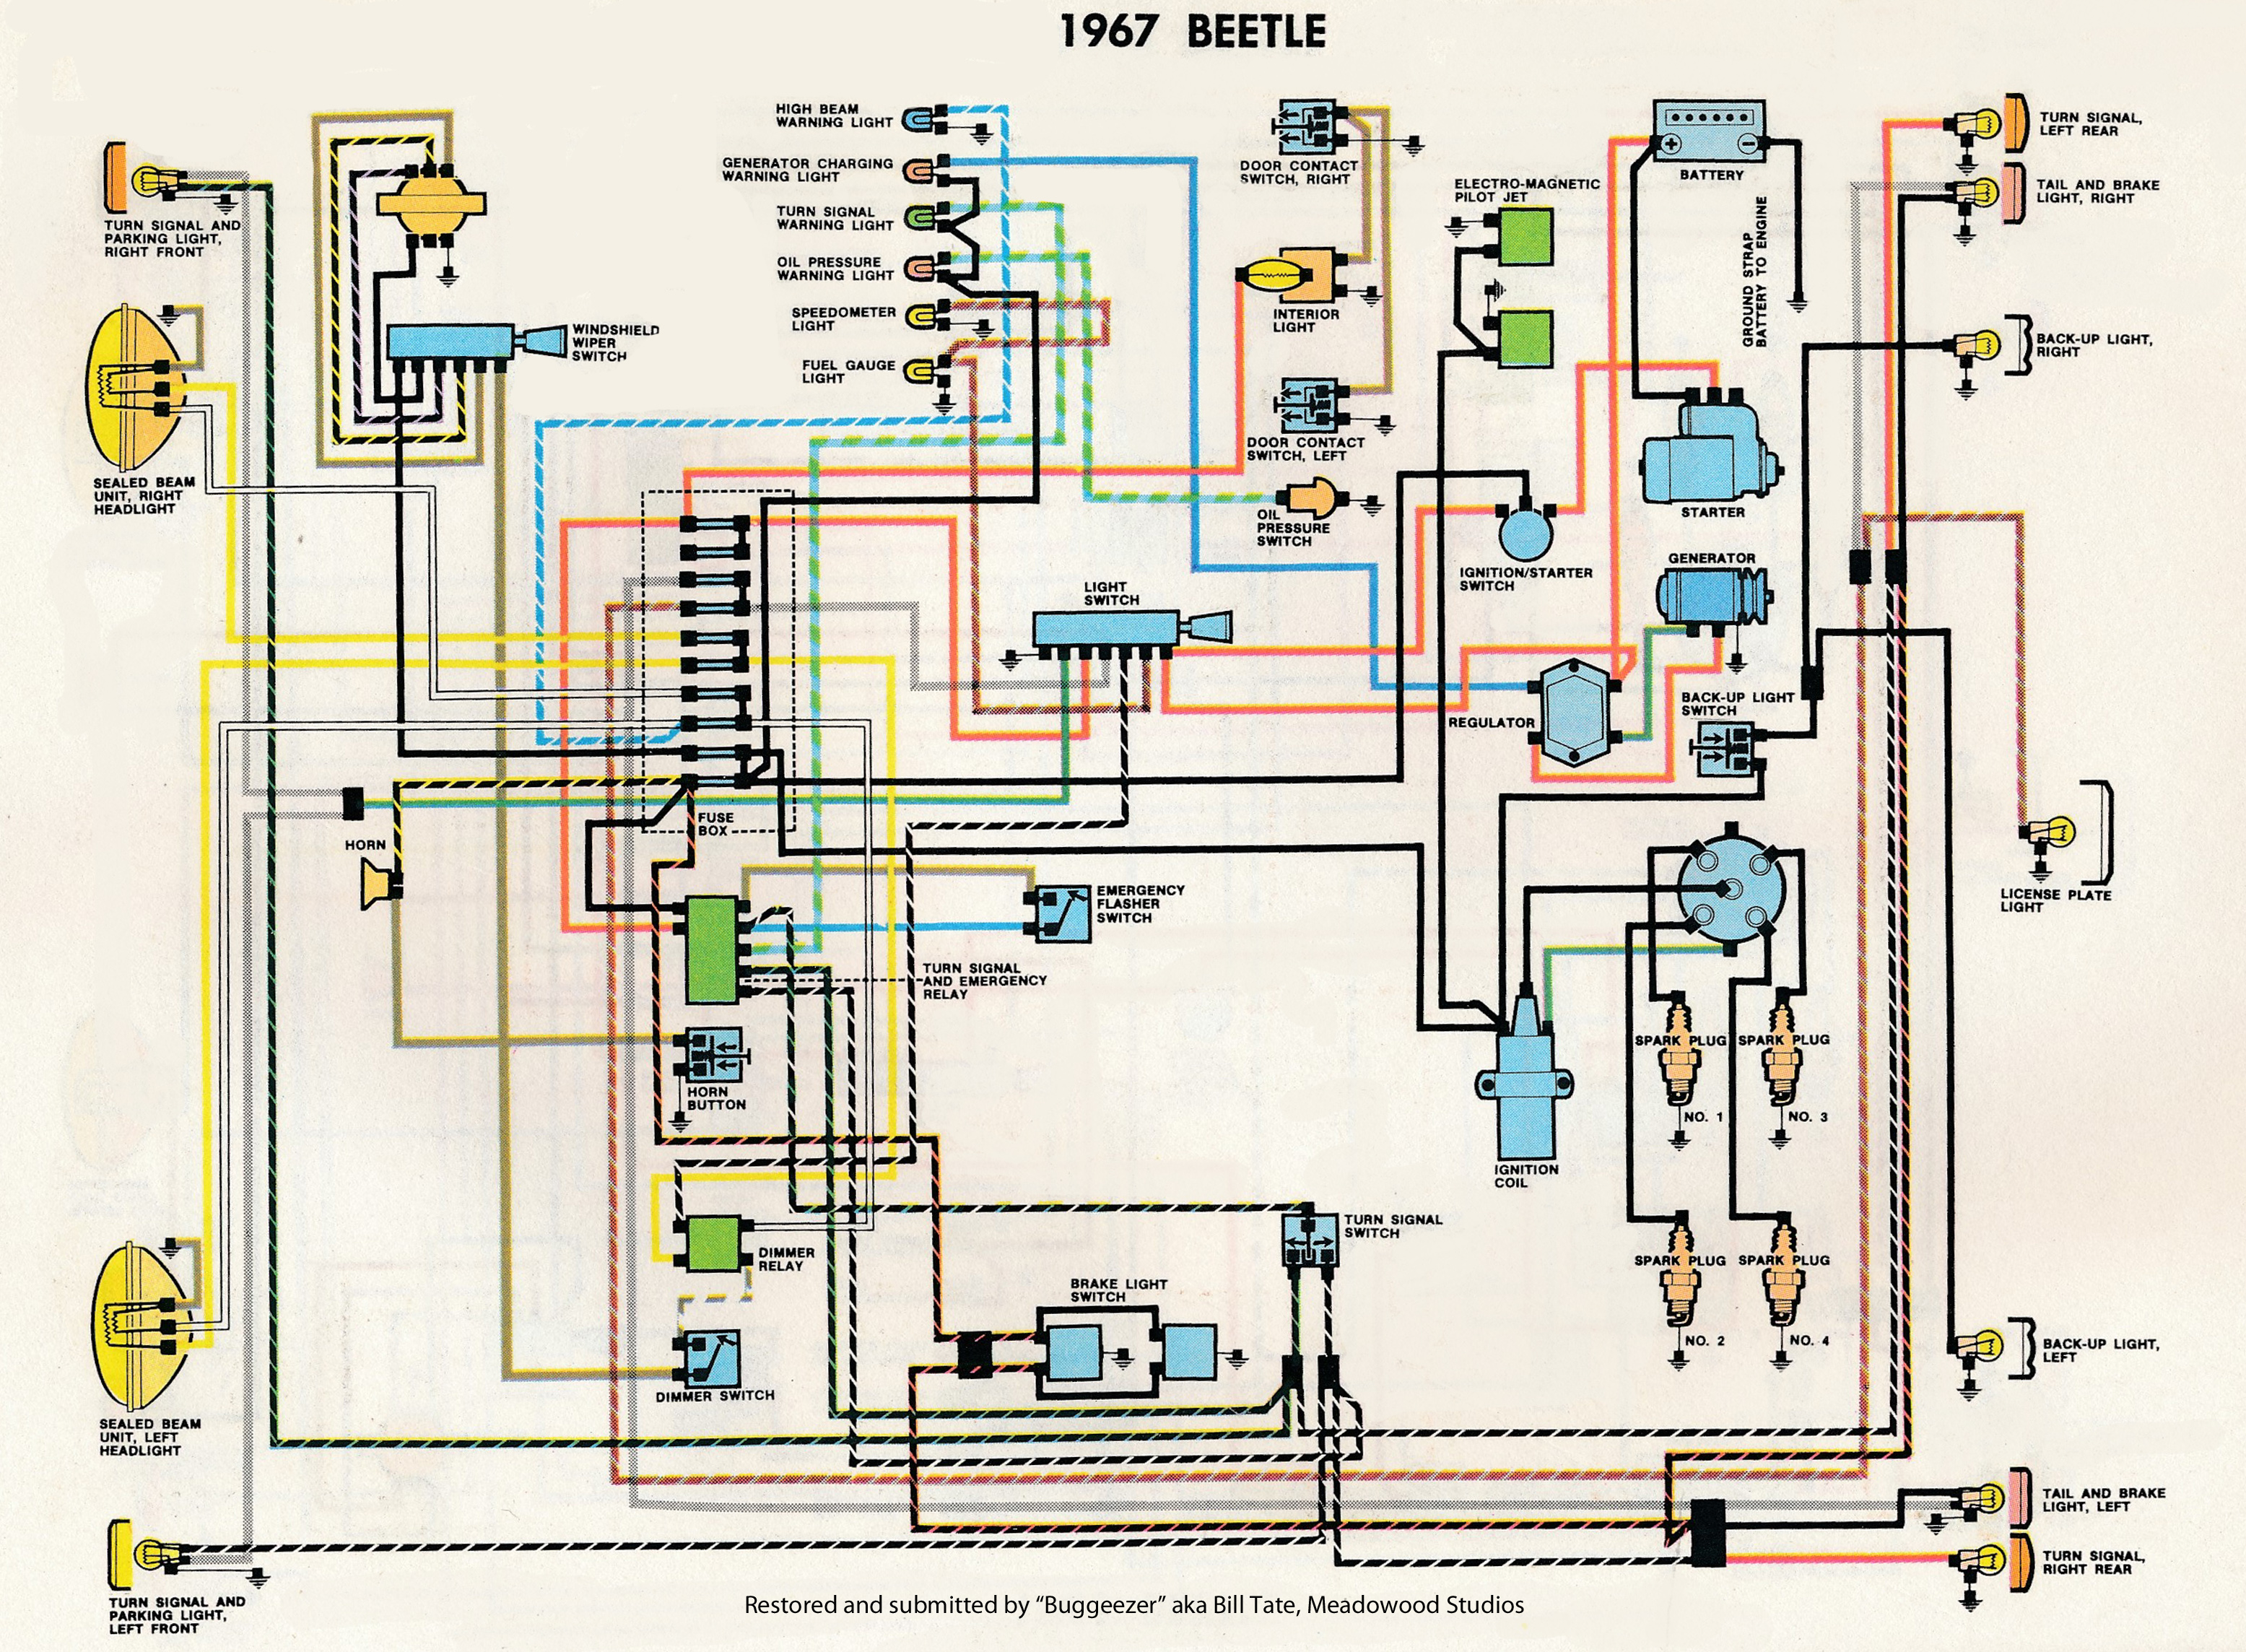 Beetle_1967_Clymers thesamba com type 1 wiring diagrams vw engine wiring diagram at arjmand.co